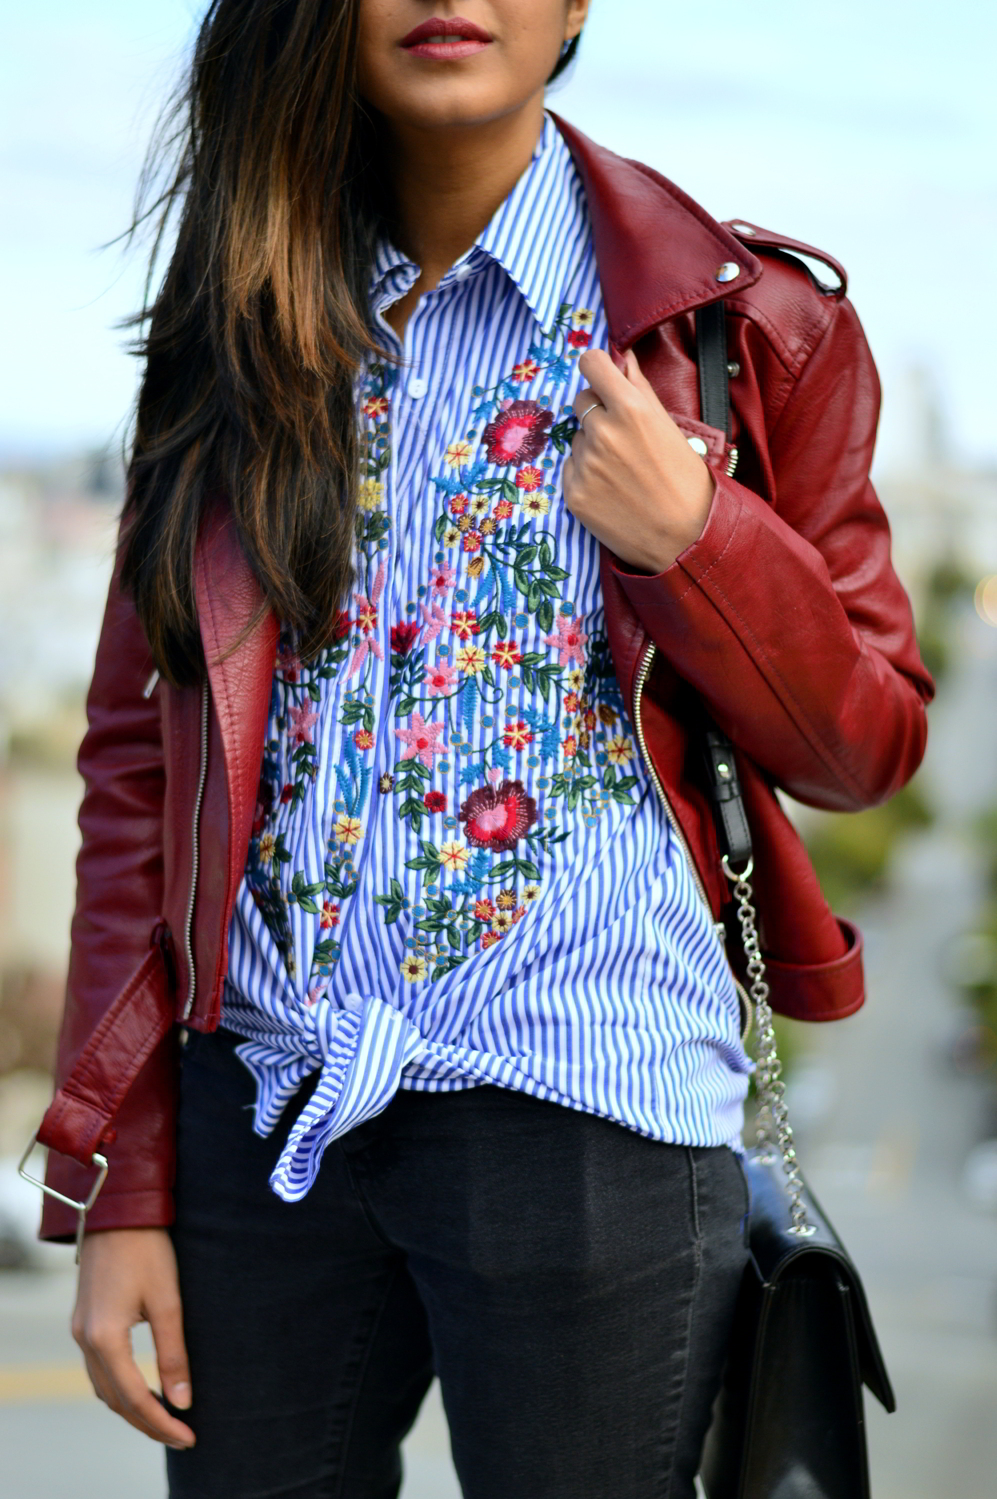 embroidered-classic-buttondown-striped-shirt-florals-leather-jacket-spring-california-style 4